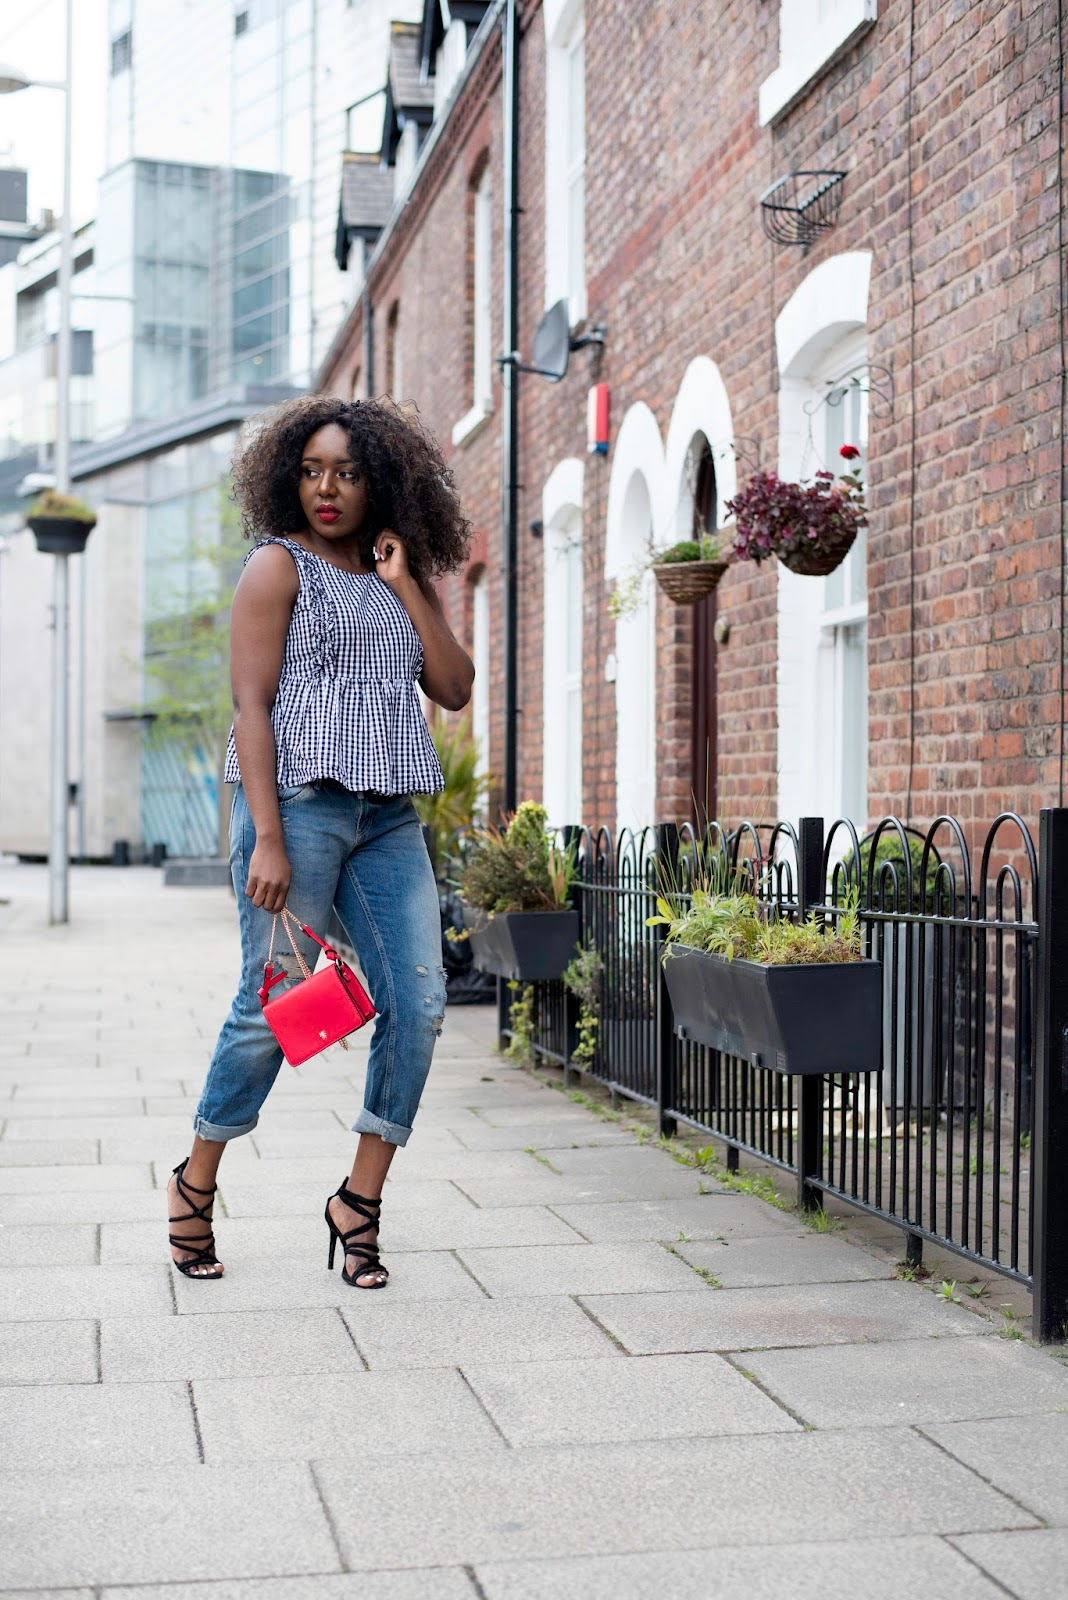 Stephylately is styling gingham for spring